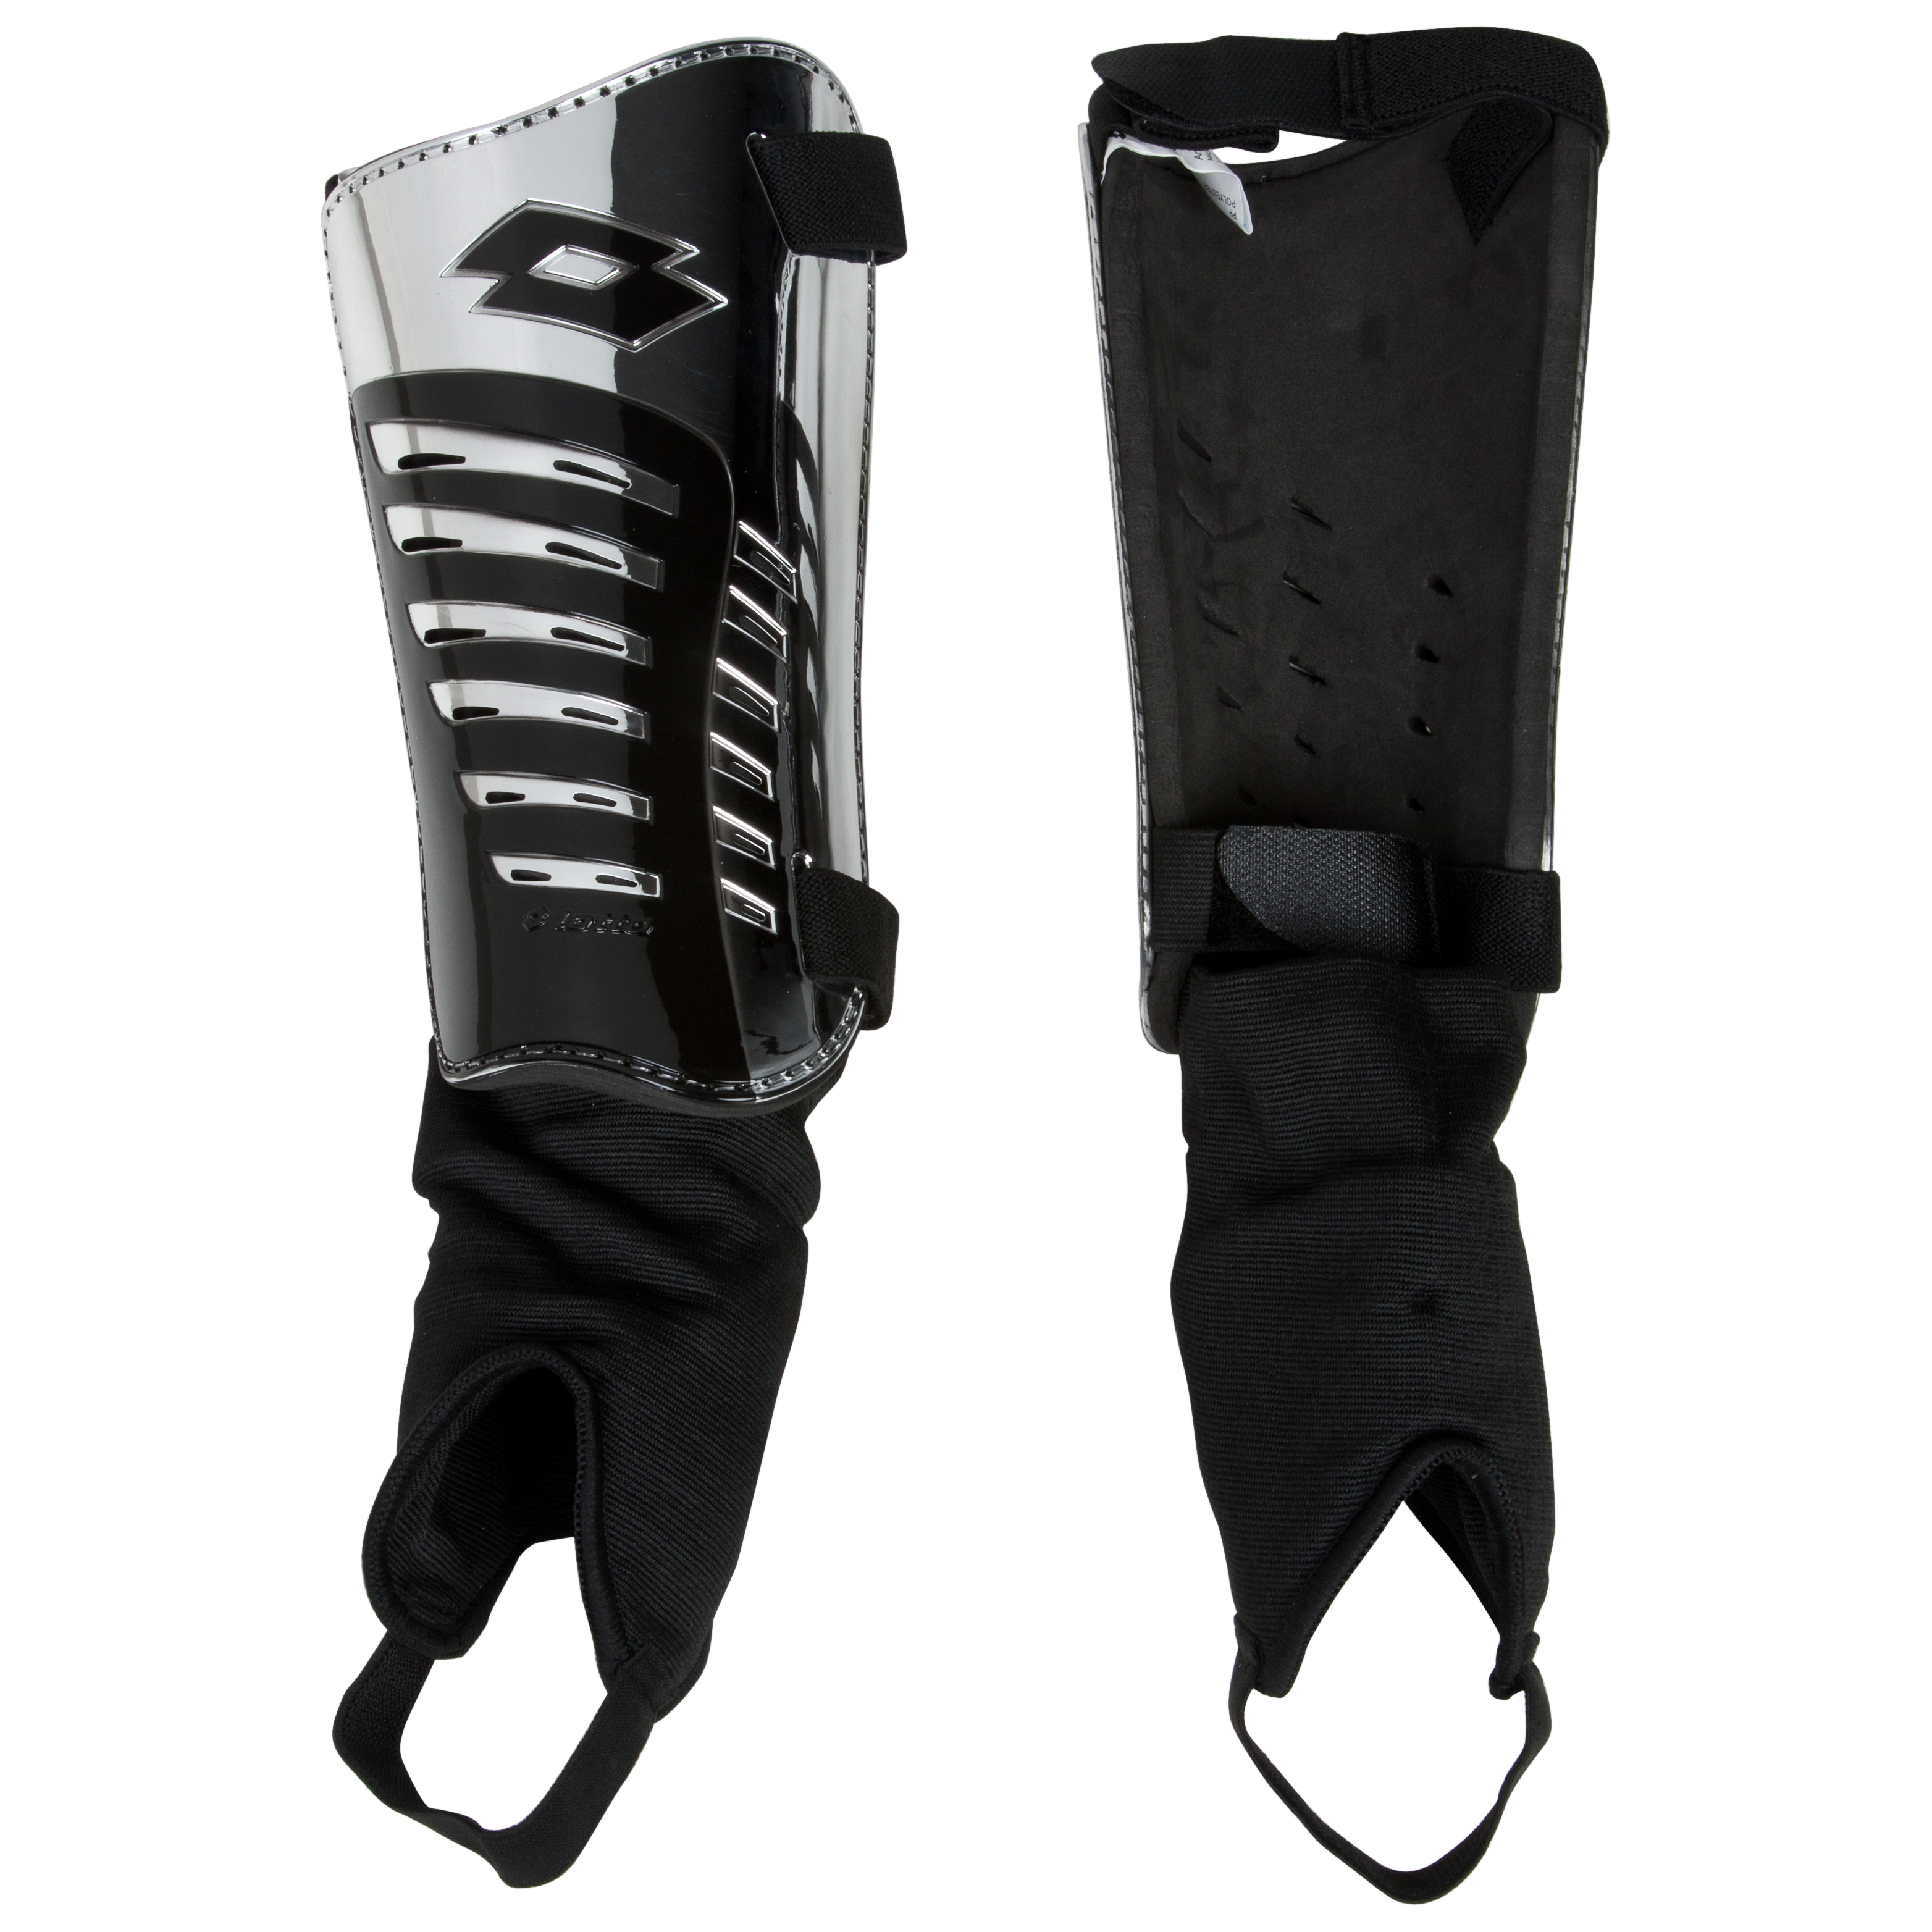 Lotto SH500 Shin Pads - Chrome/Black - Medium